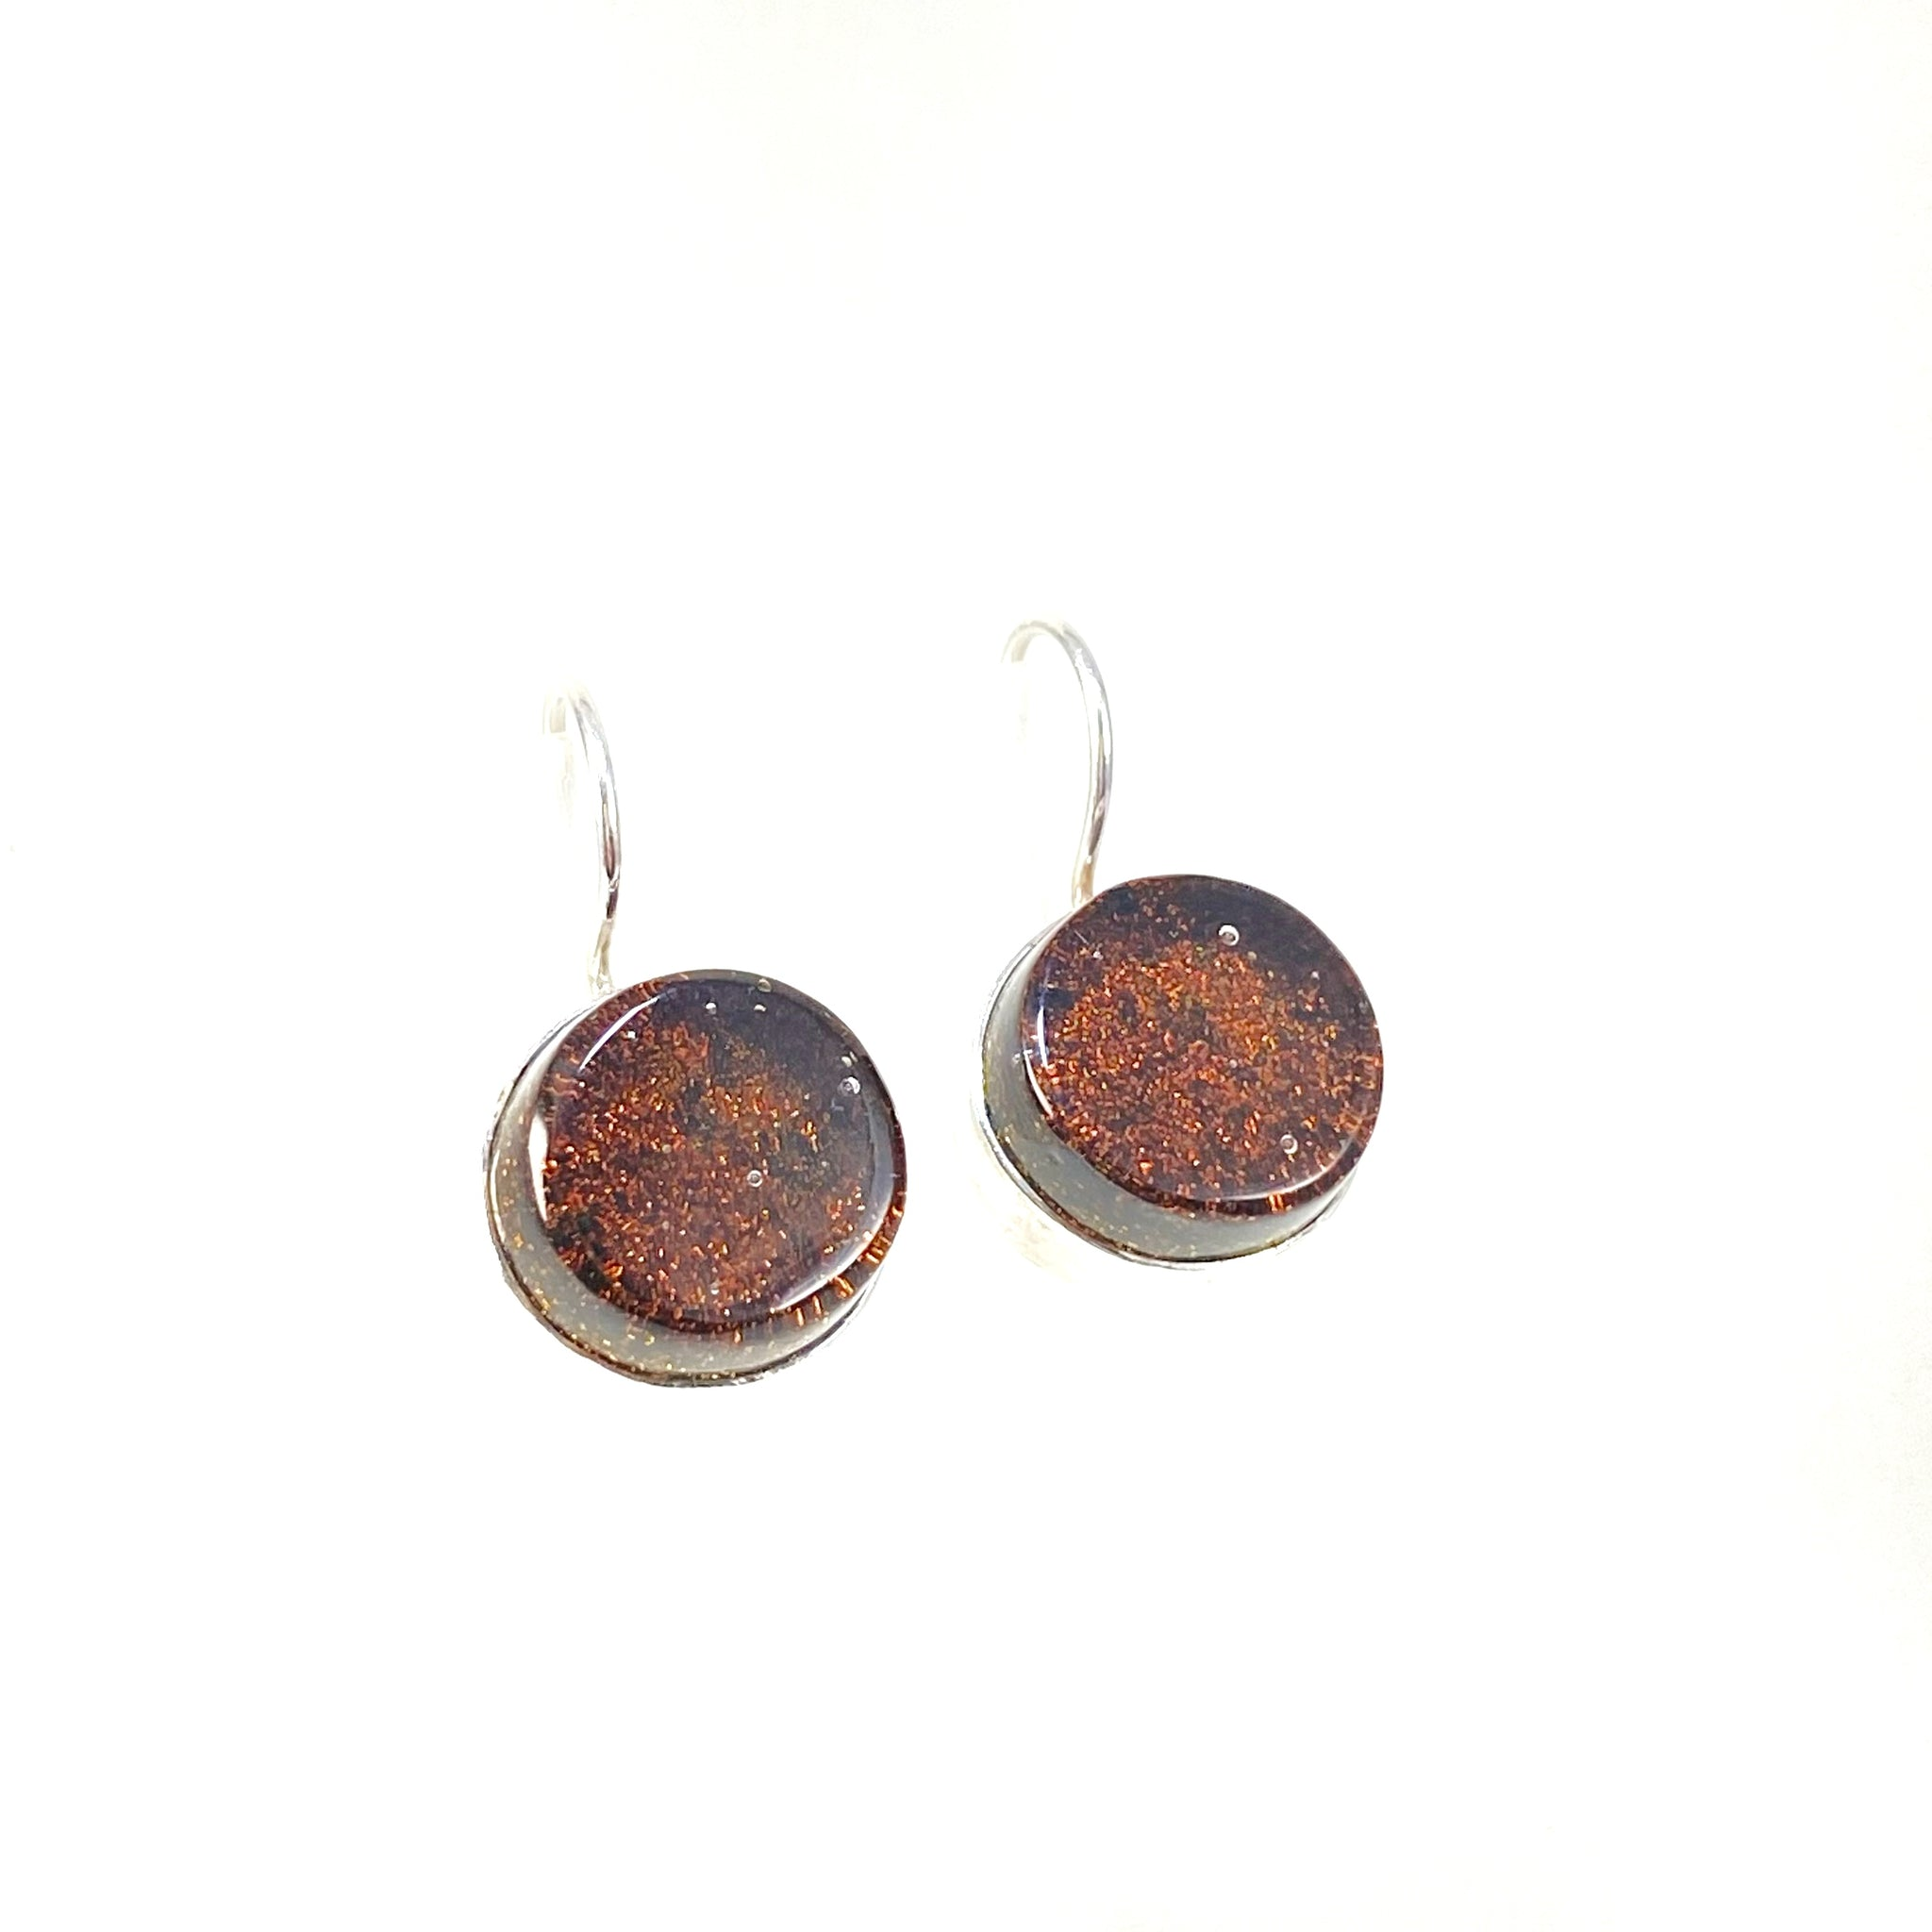 chocolate, brown, glass earrings, fused glass, glass jewelry, glass and silver jewelry, handmade, handcrafted, American Craft, hand fabricated jewelry, hand fabricated jewellery, Athen, Georgia, colorful jewelry, sparkle, bullseye glass, dichroic glass